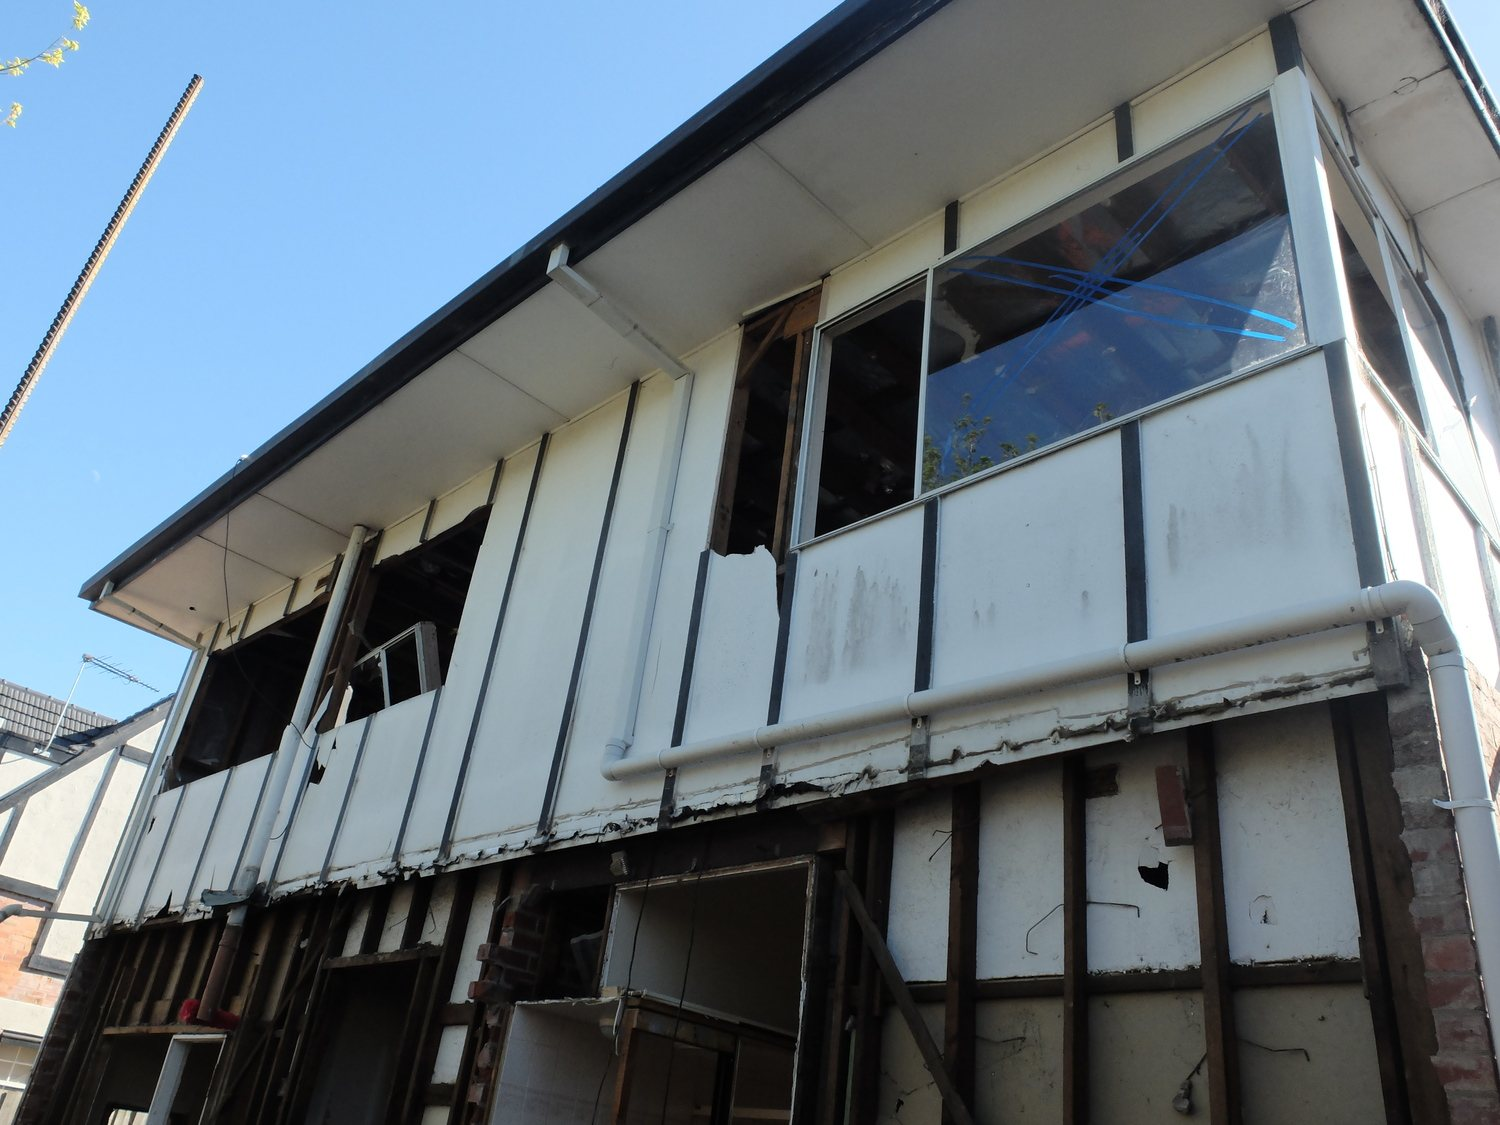 Asbestos testing Melbourne  - Both the upper walls and the eaves of this residence are made of asbestos cement sheeting. If you are part way through a demolition like this, it is better late than never - have your site tested for asbestos before going any further.